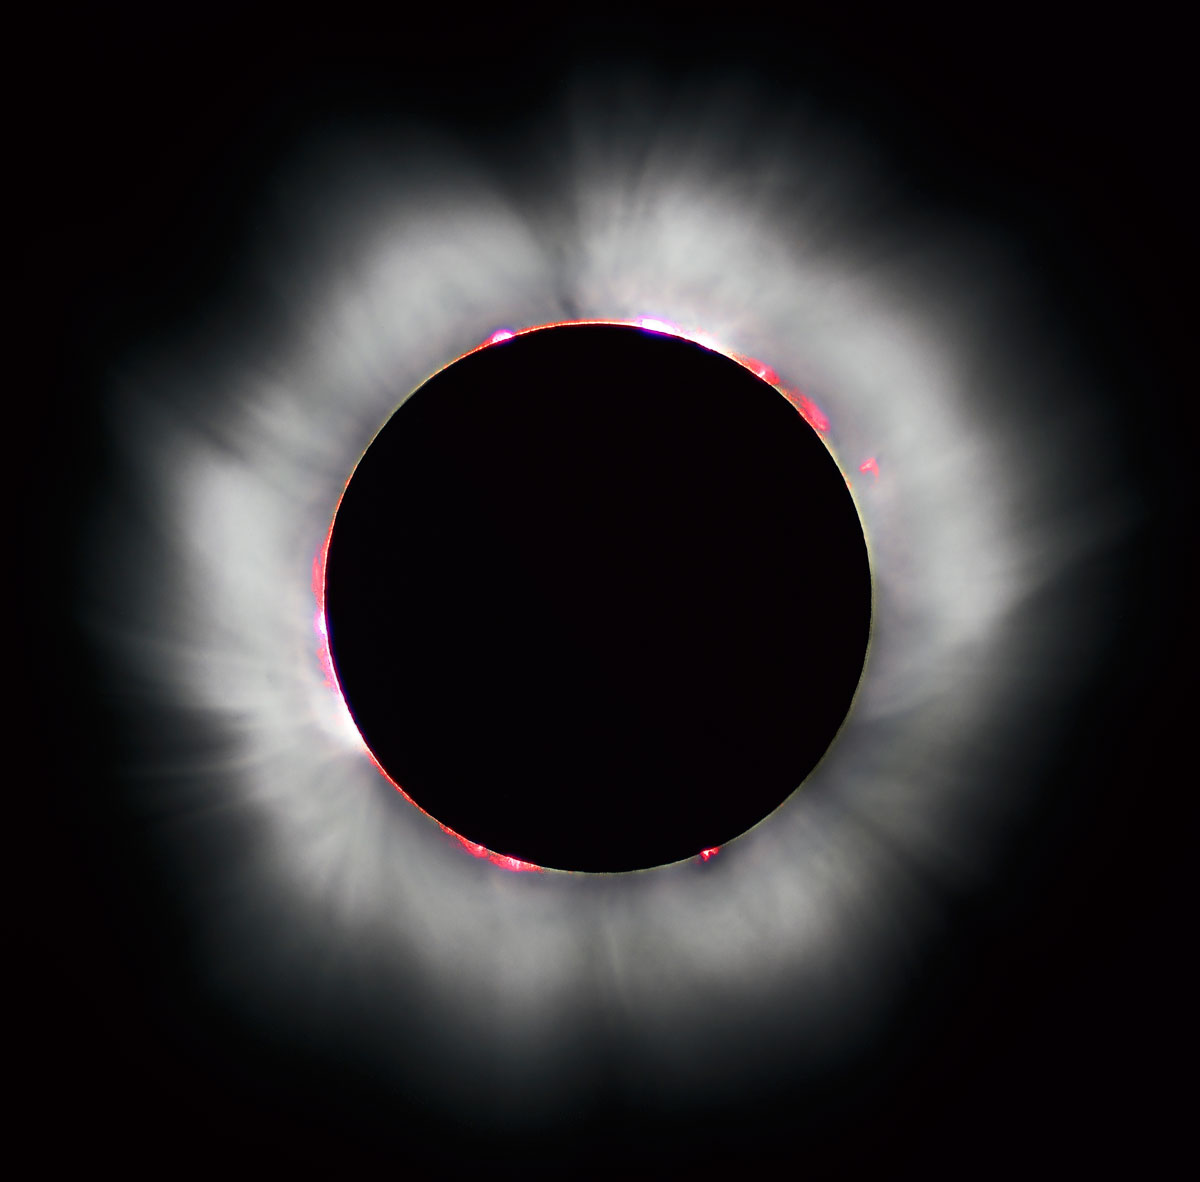 solar eclipse 1999 4 nr Everything You Need to Know About the Most Anticipated Solar Eclipse in US History